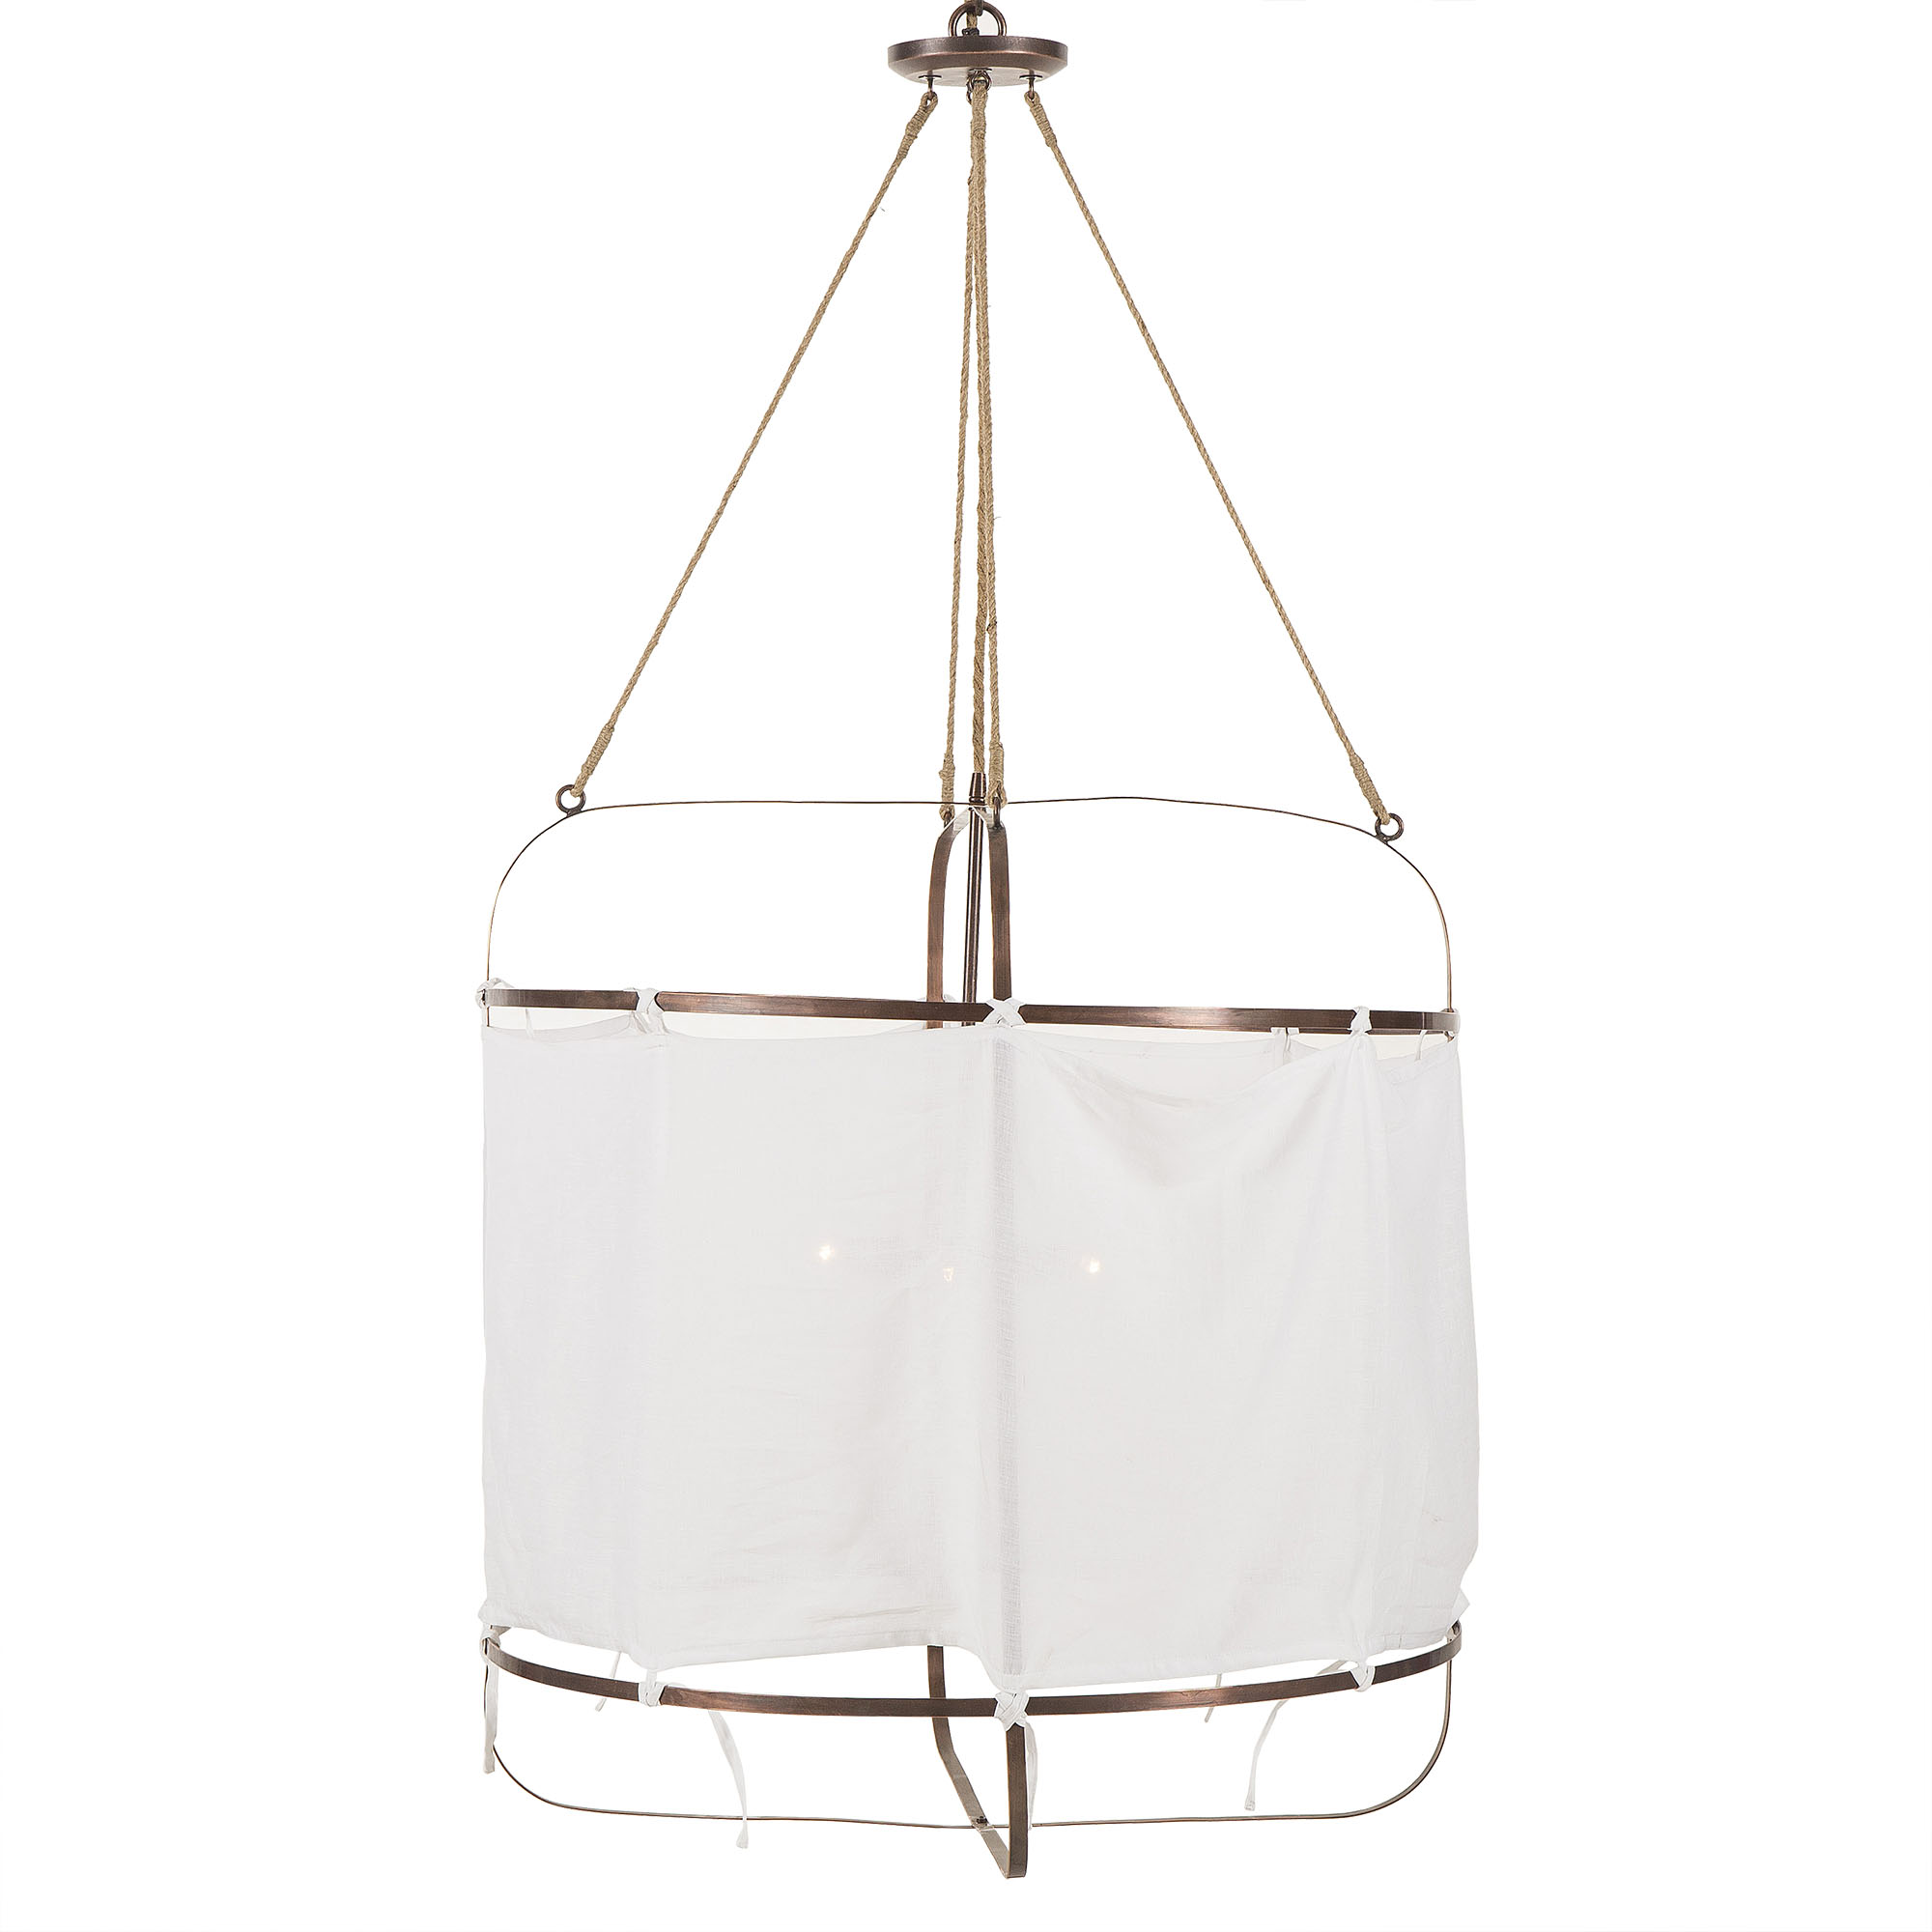 LI101F01 - french laundry in white & copper .jpg